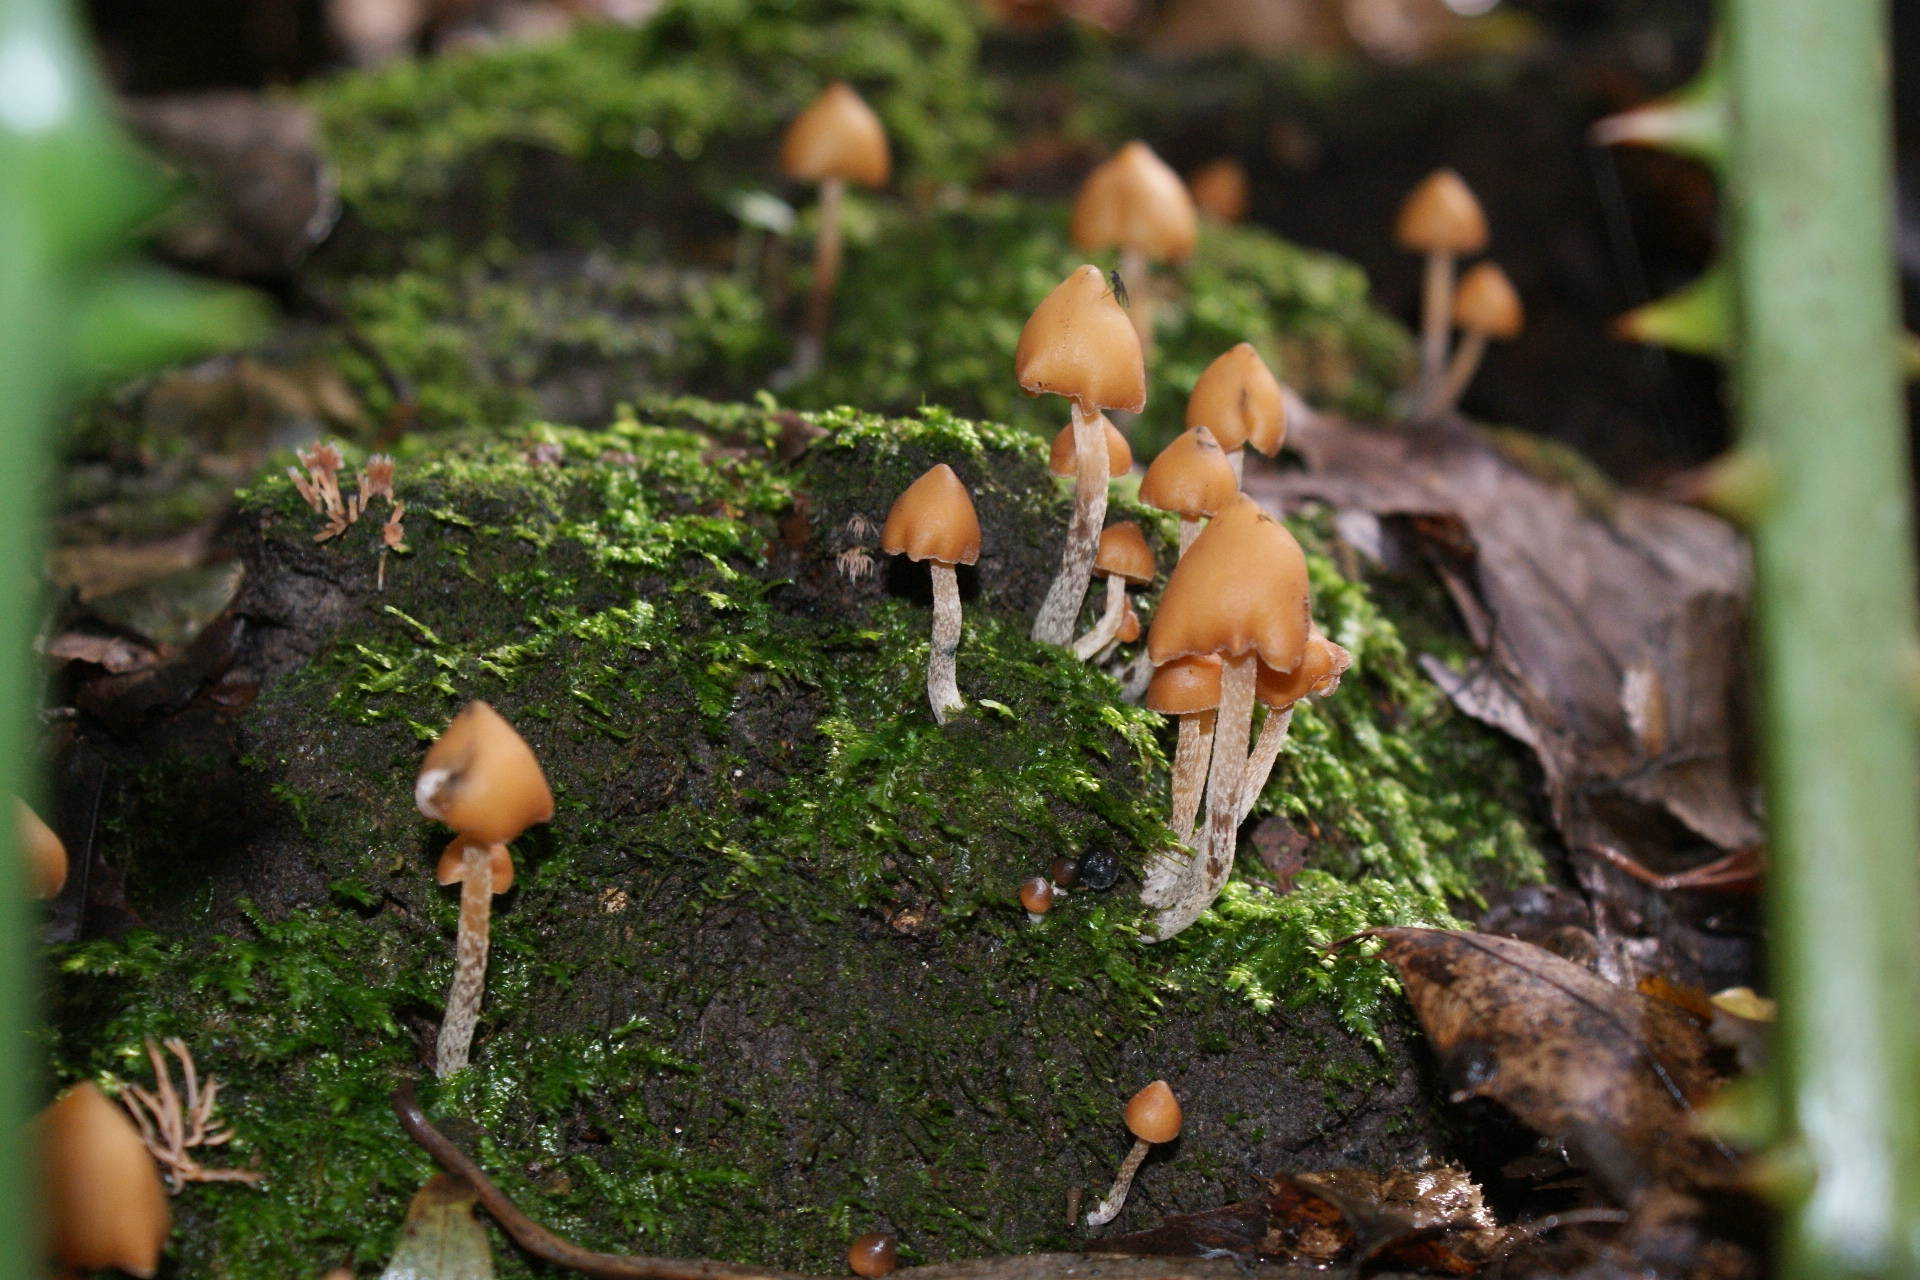 Today's exotic actives foray - Mushroom Hunting and